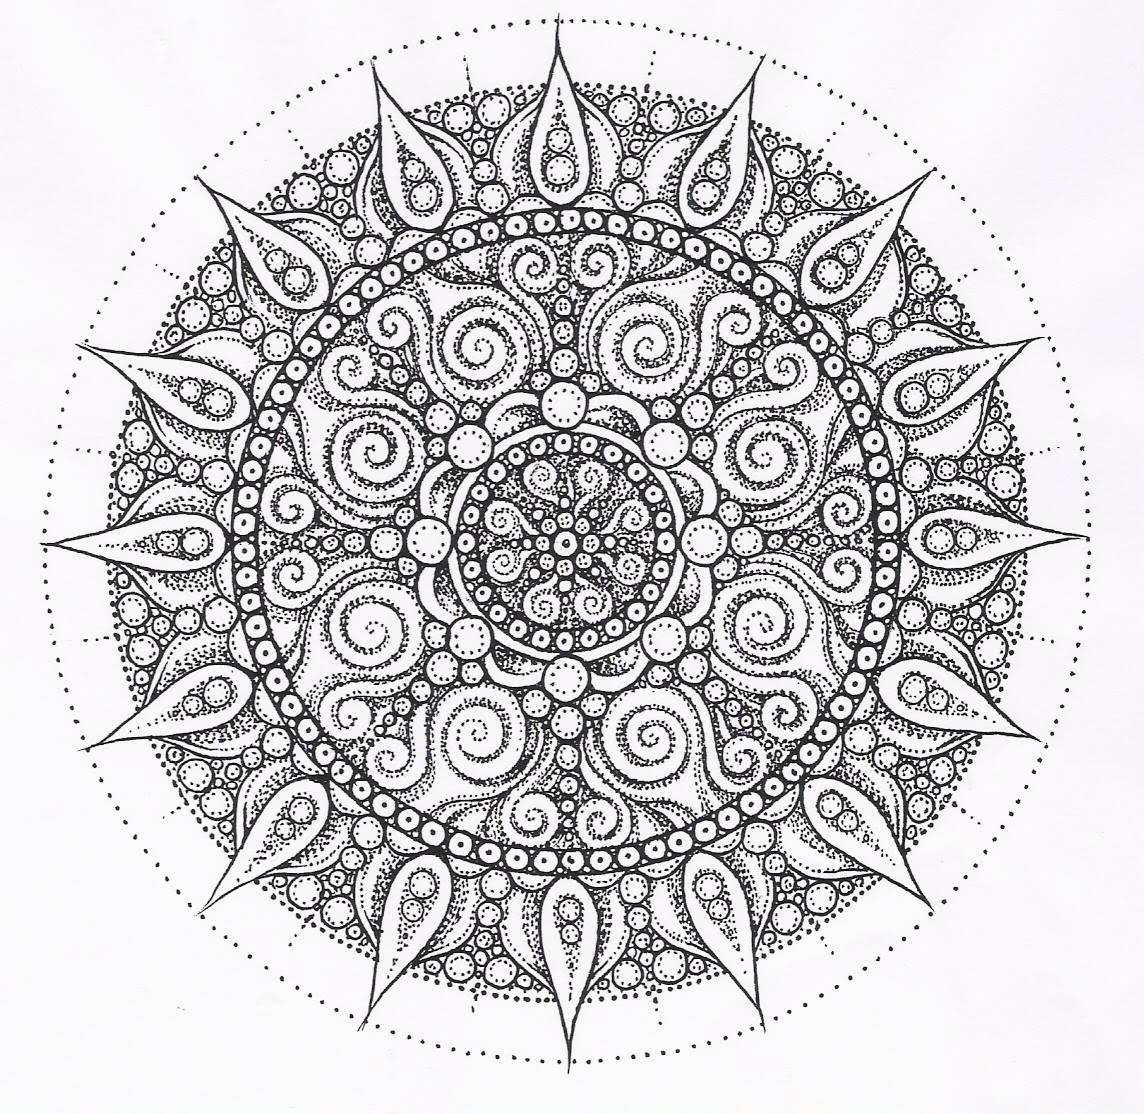 1000 images about Mandala on Pinterest